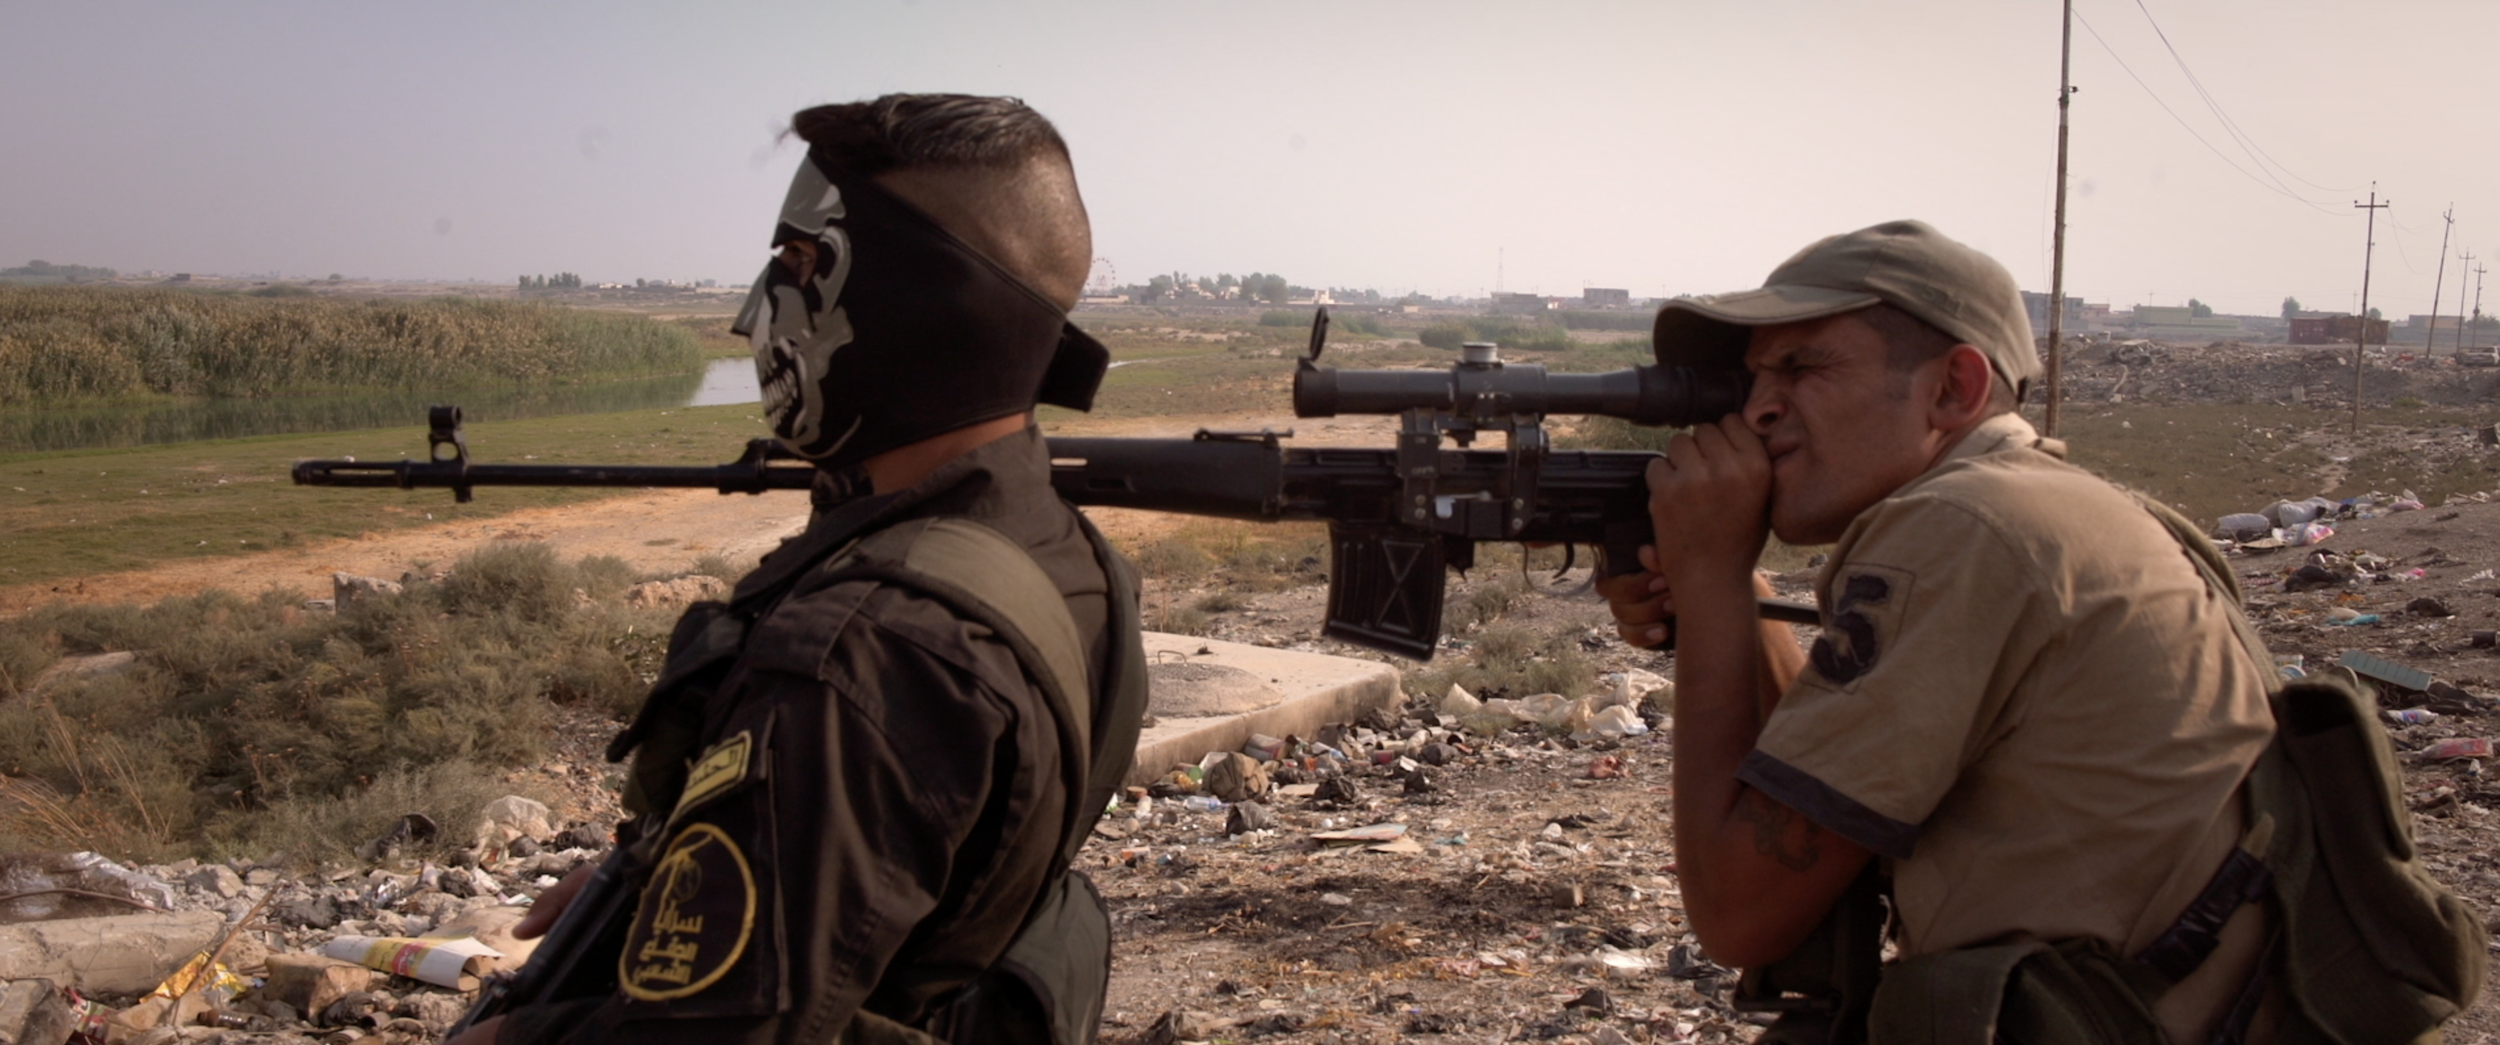 Soldier pointing rifle next to masked soldier.png